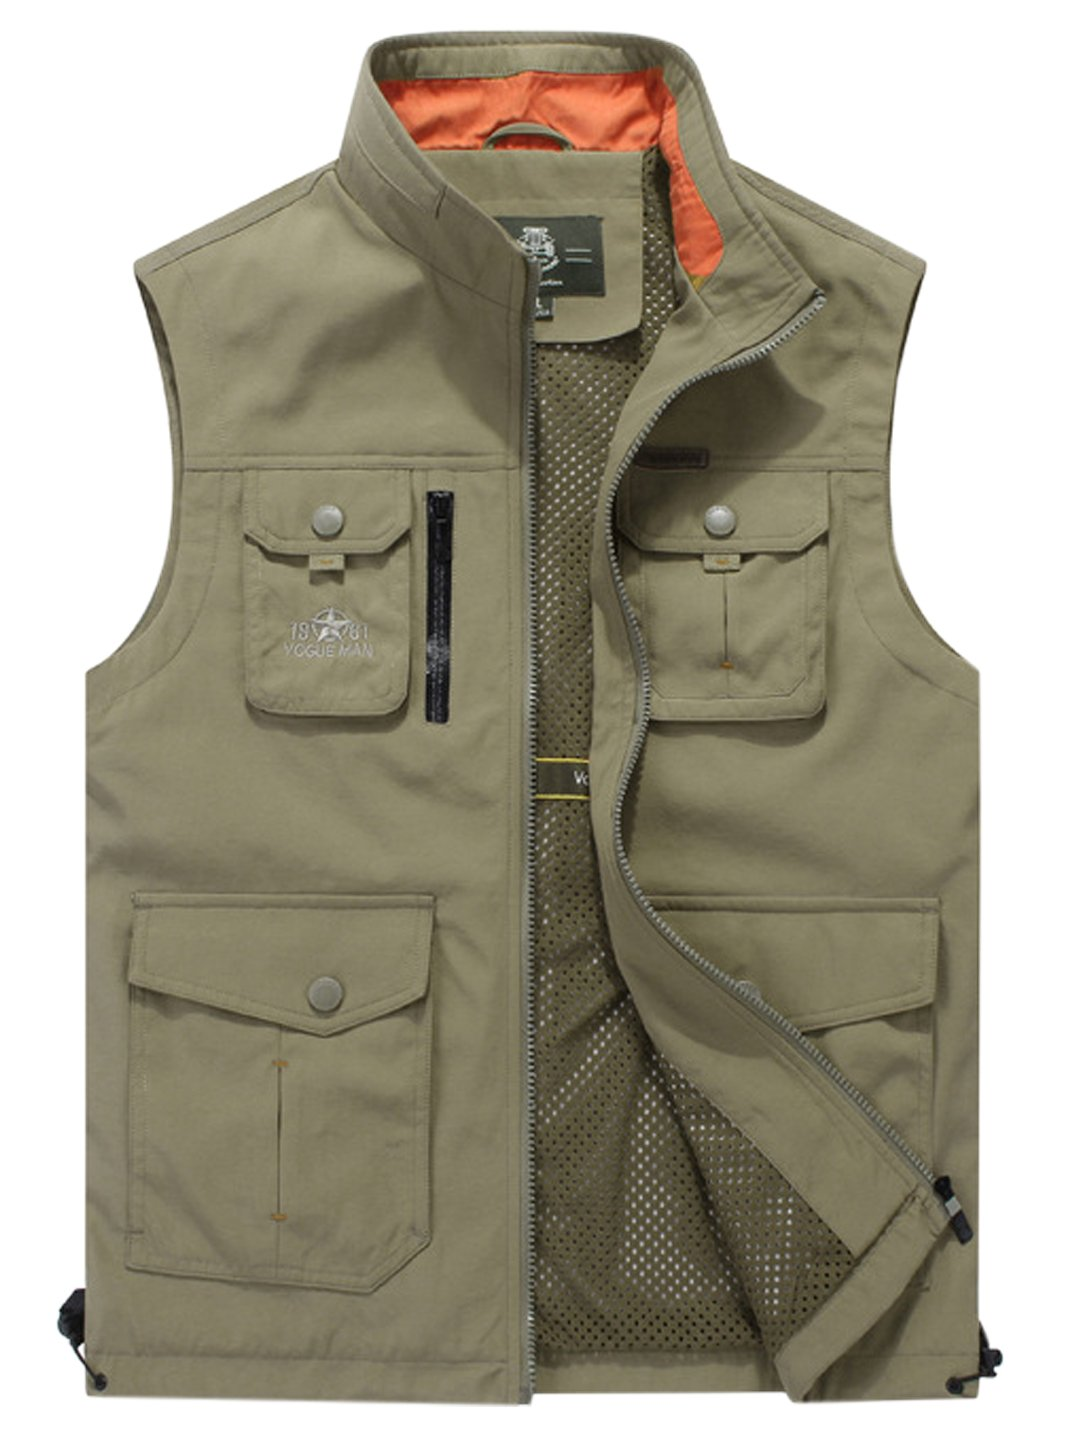 Gihuo Men's Utility Outdoor Multi Pockets Fishing Photo Journalist Sports Vest (Small, Khaki) by Gihuo